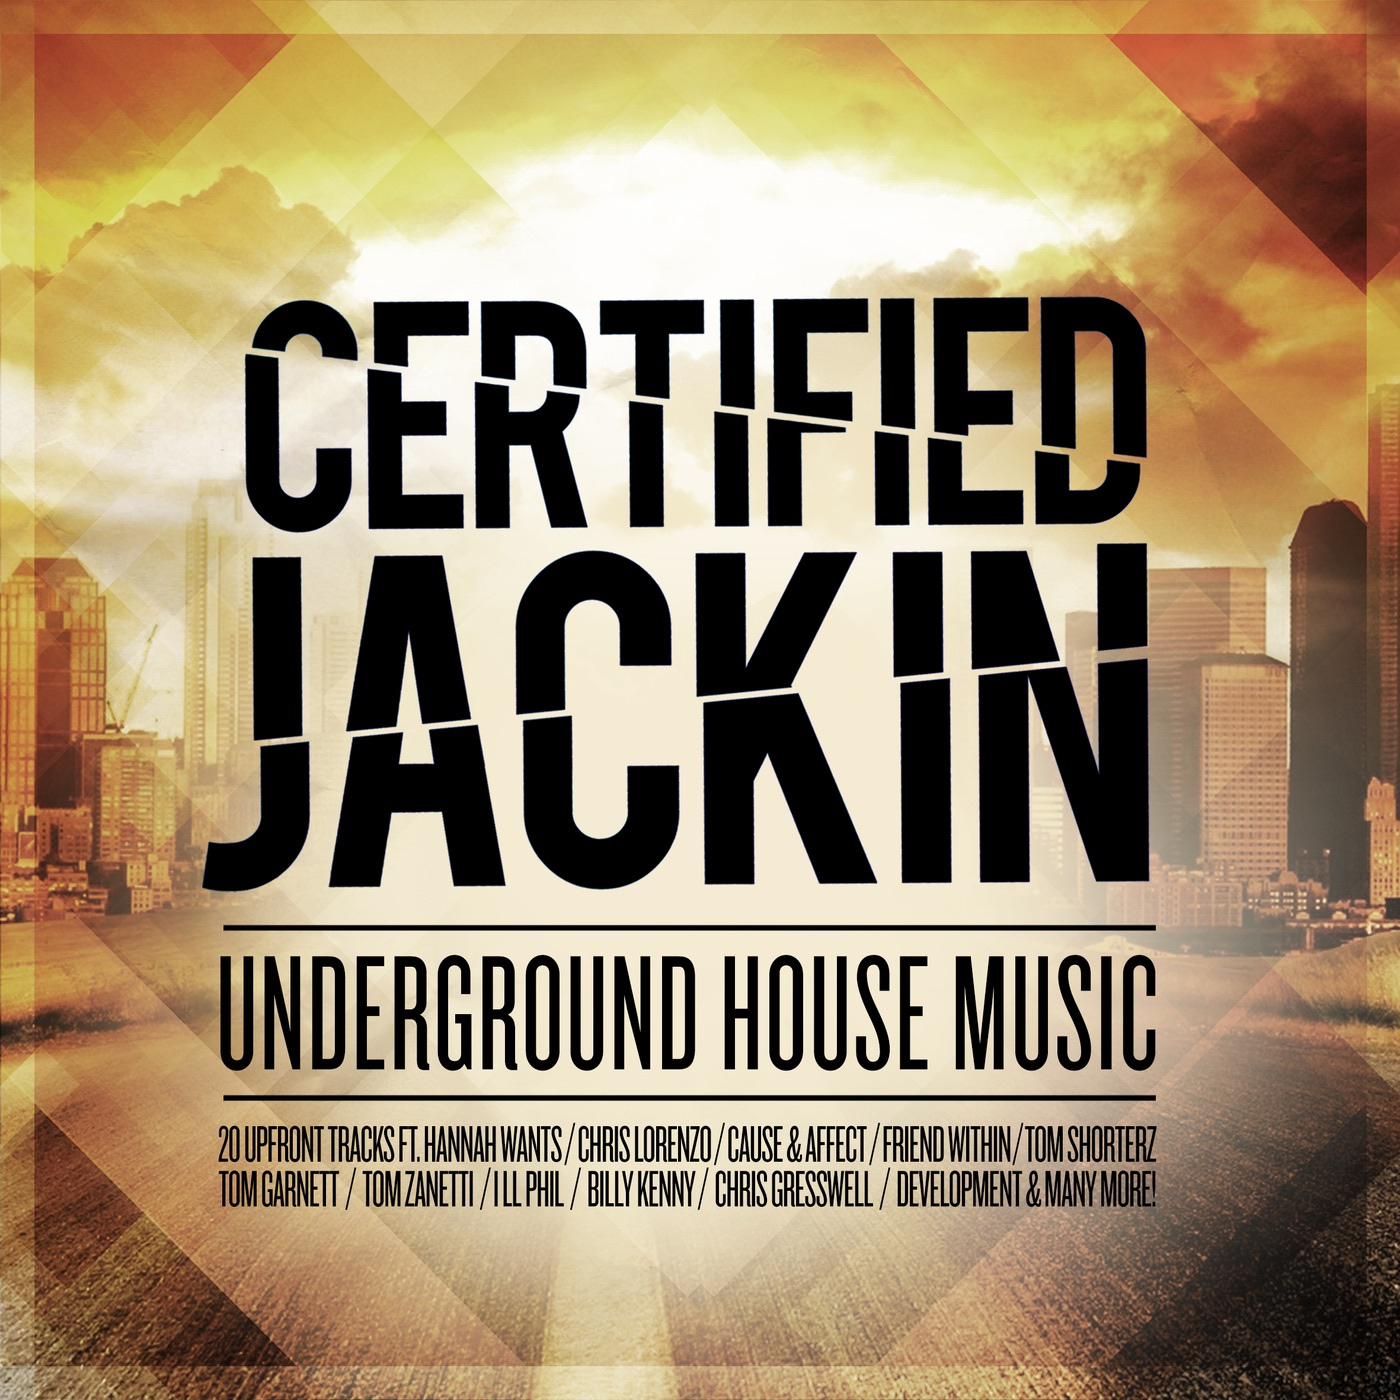 Certified jackin underground house music by various for 45 house music